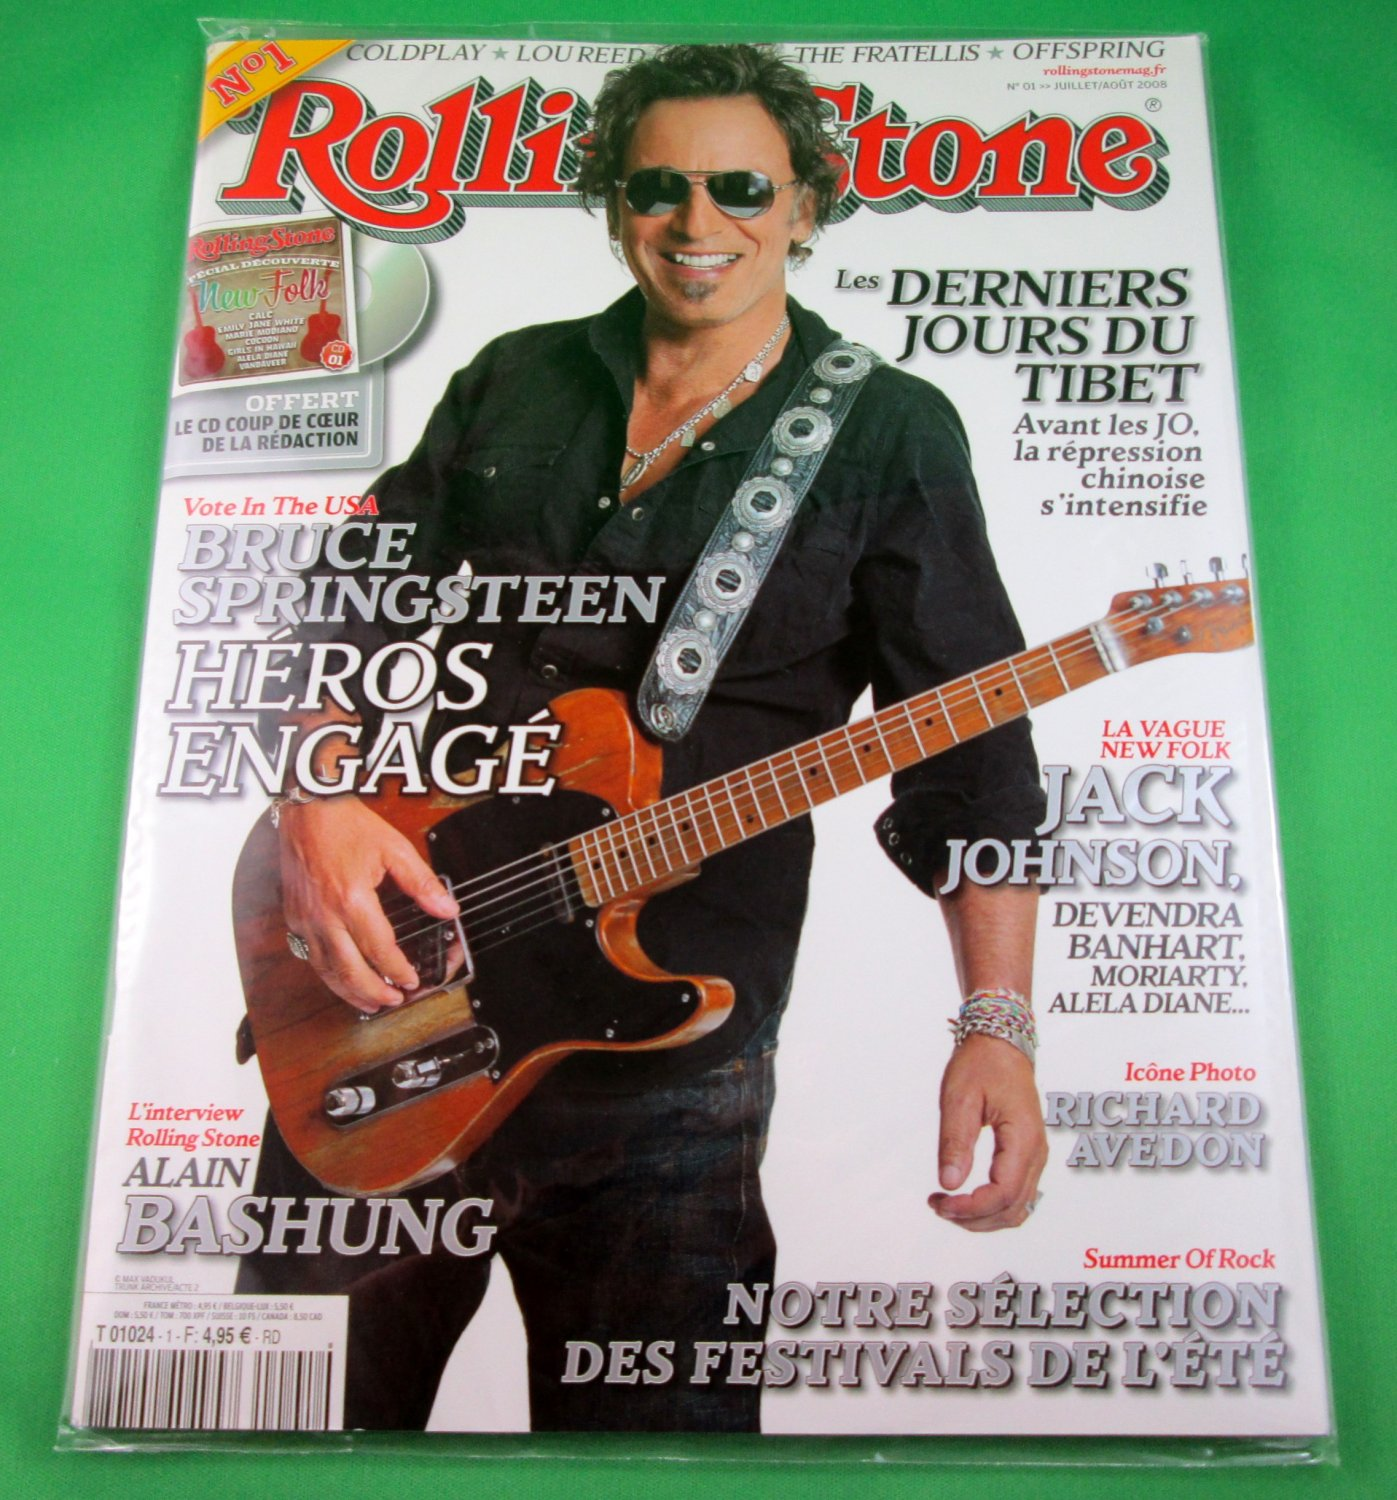 FRENCH LANGUAGE ROLLING STONE MAGAZINE #01 July/August 2008 BRUCE SPRINGSTEEN